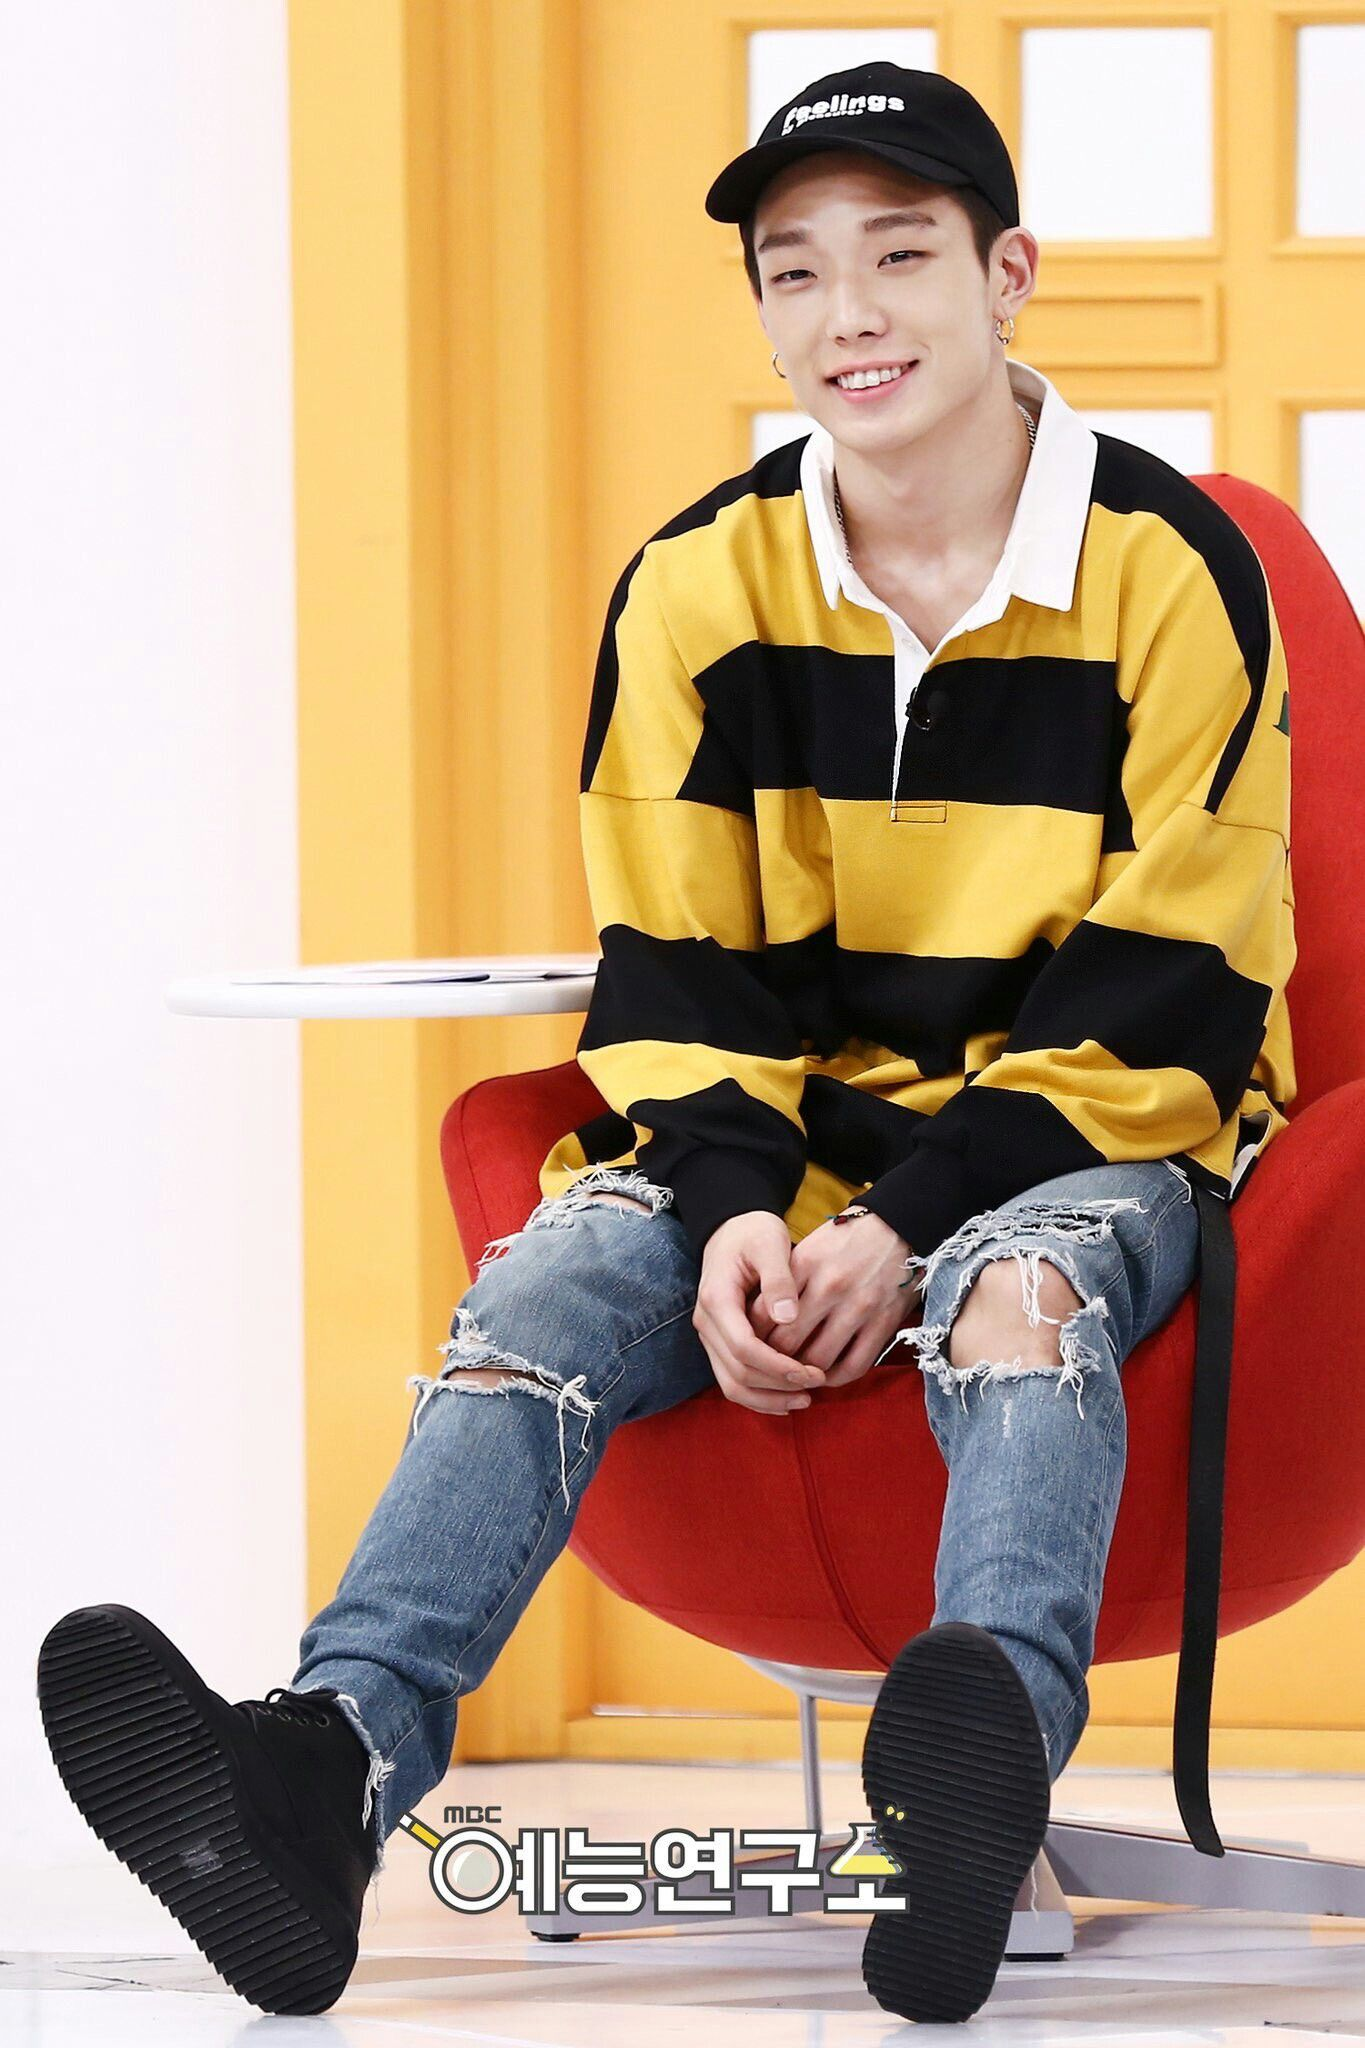 Ikon Bobby For Mbc Insolent Housematesliving Together In An Empty